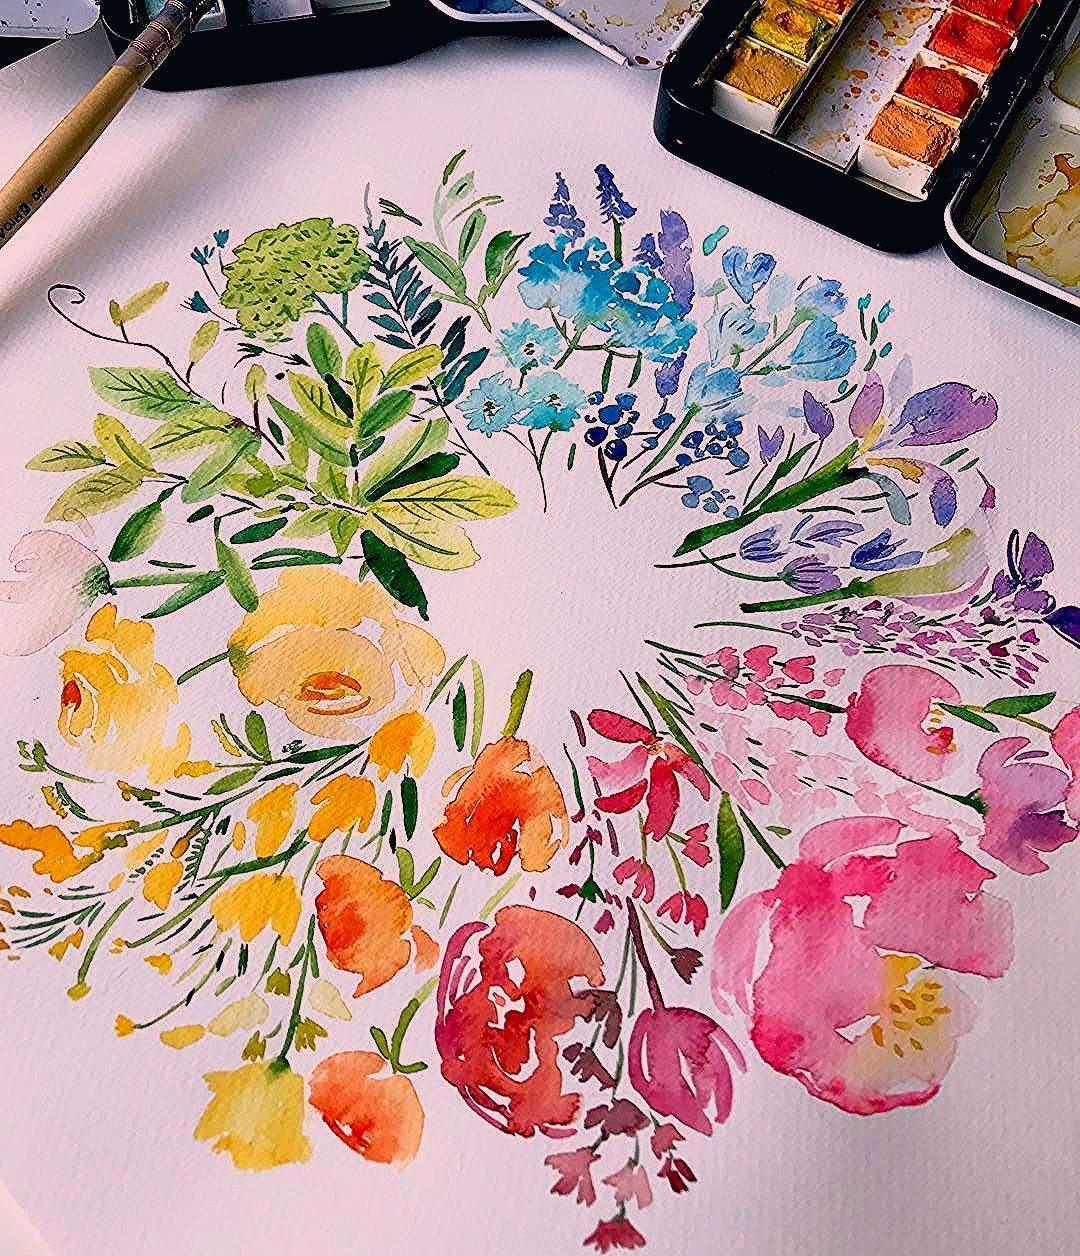 """Enya&;s art of patisserie on Instagram """"Happy Friday with the colourful flowers wheel ???&; Enya&;s art of patisserie on Instagram """"Happy Friday with the colourful flowers wheel ???&; Binahayat binahayat1392 paint Enya&;s art of[…]  #art #Colourful #Enyas #flower painting #flowers #Friday #Happy #Instagram #patisserie #Wheel"""